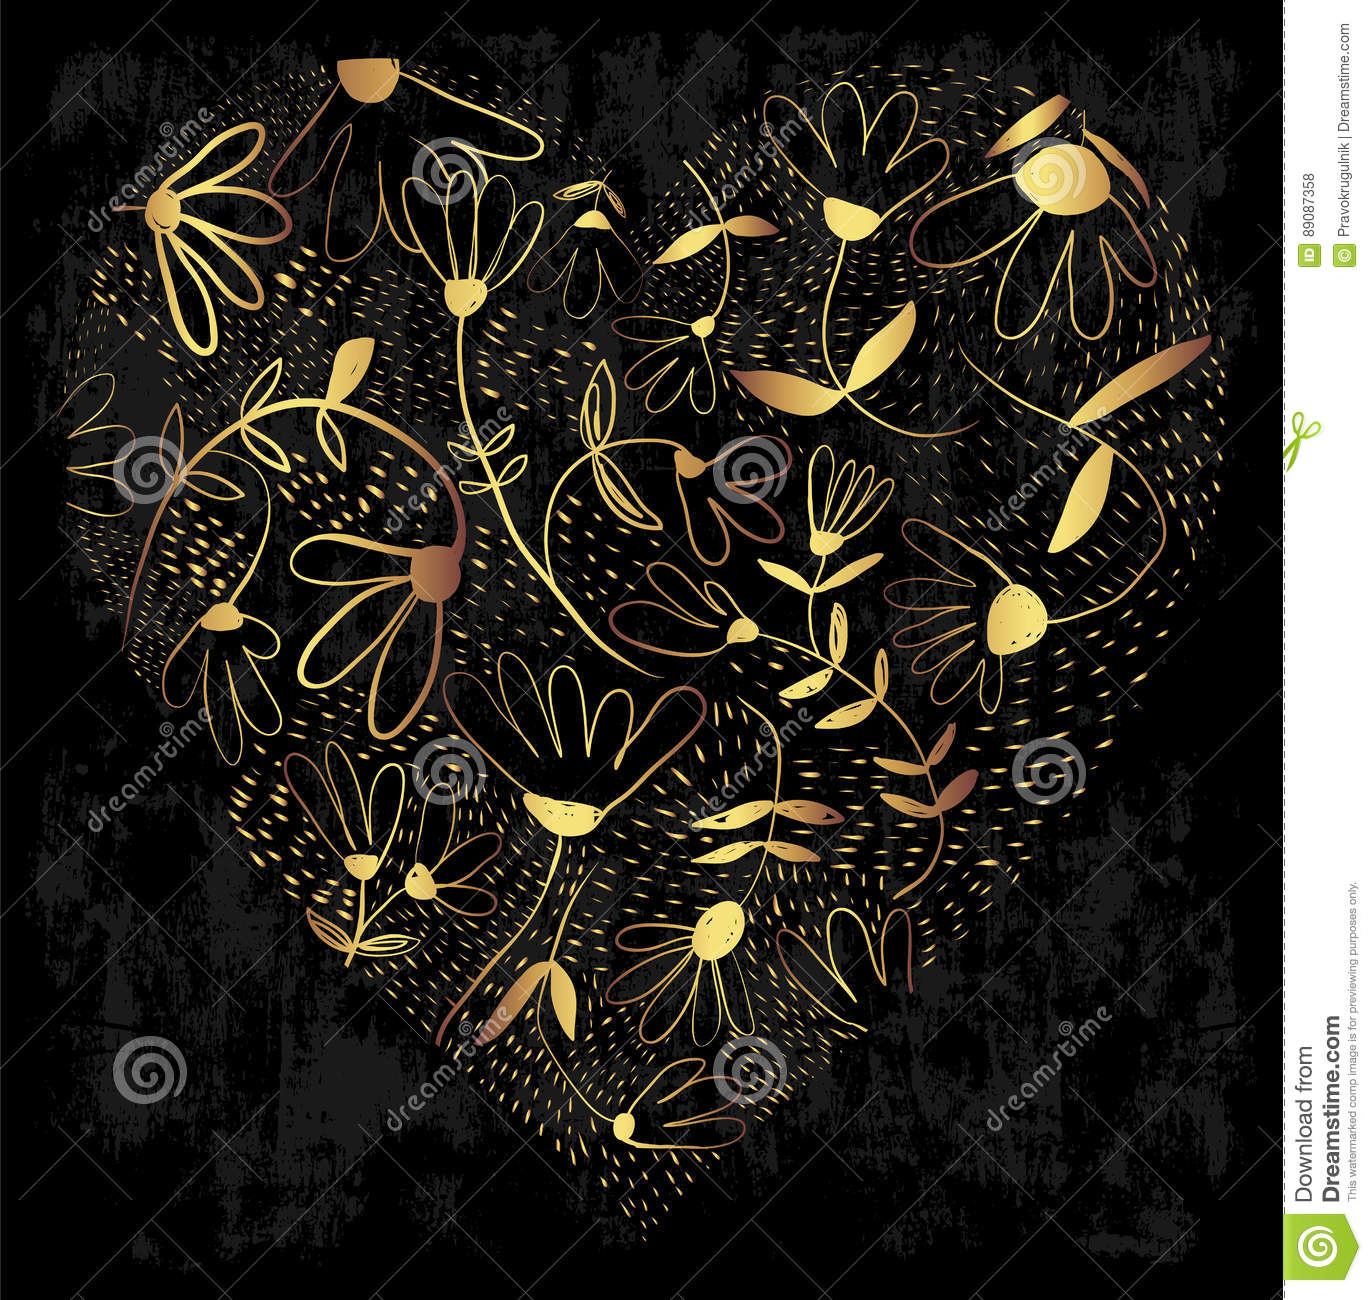 Gold decorative heart with flowers on a grungy background